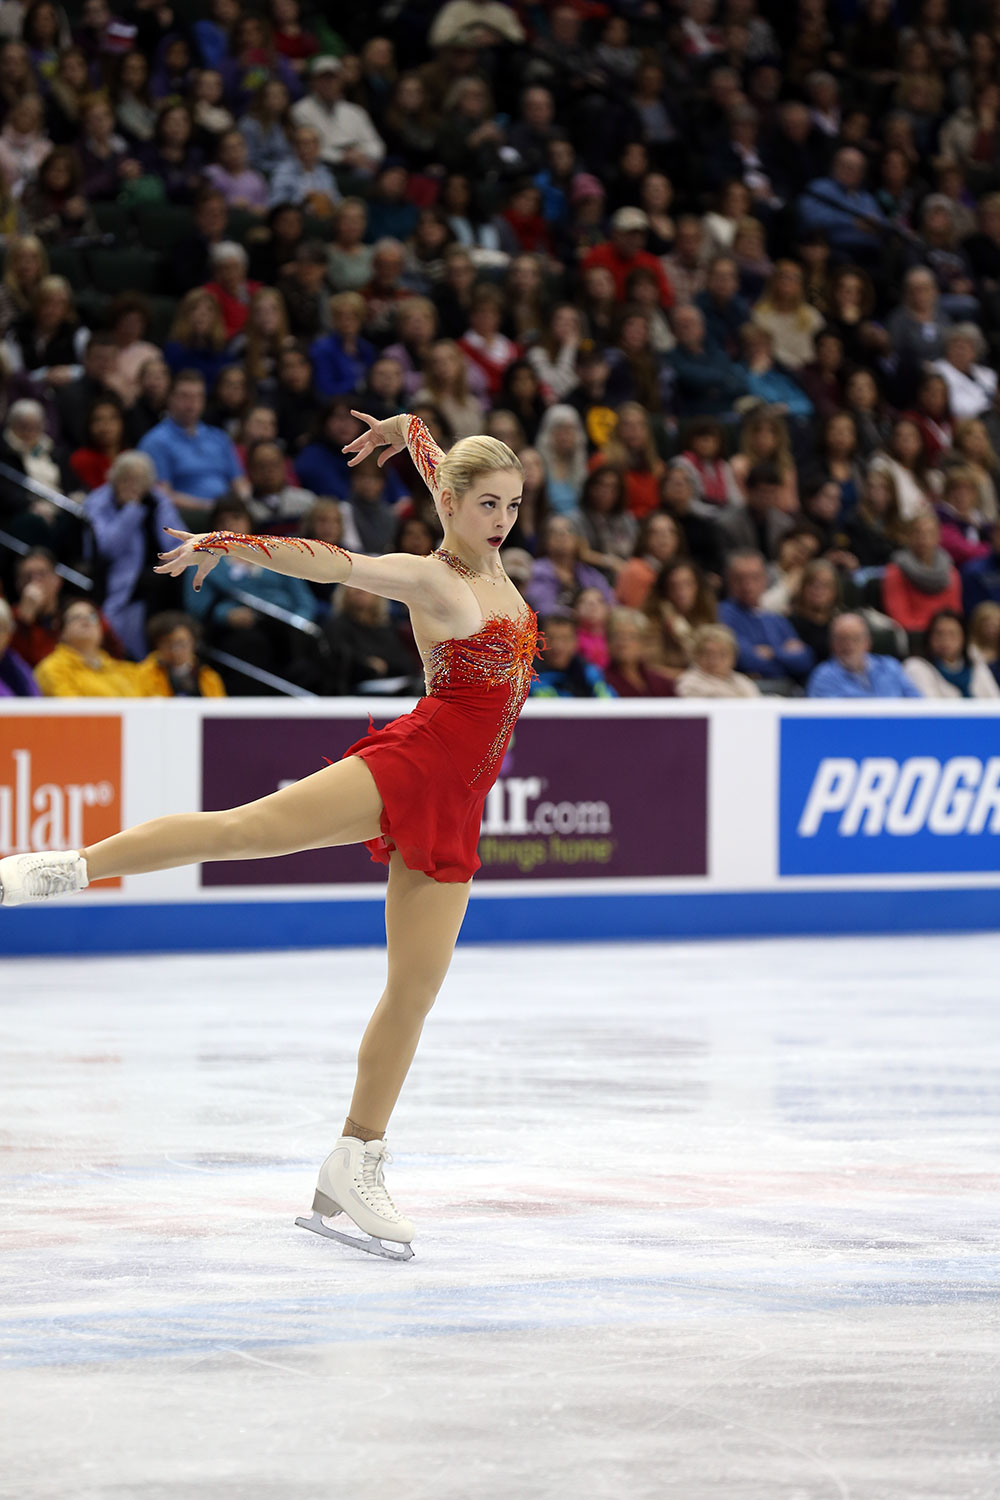 Gracie Gold using her arms as the Firebird's wings during the dazzling free program that won her second U.S. title.  (U.S. Figure Skating / Jay Adeff)